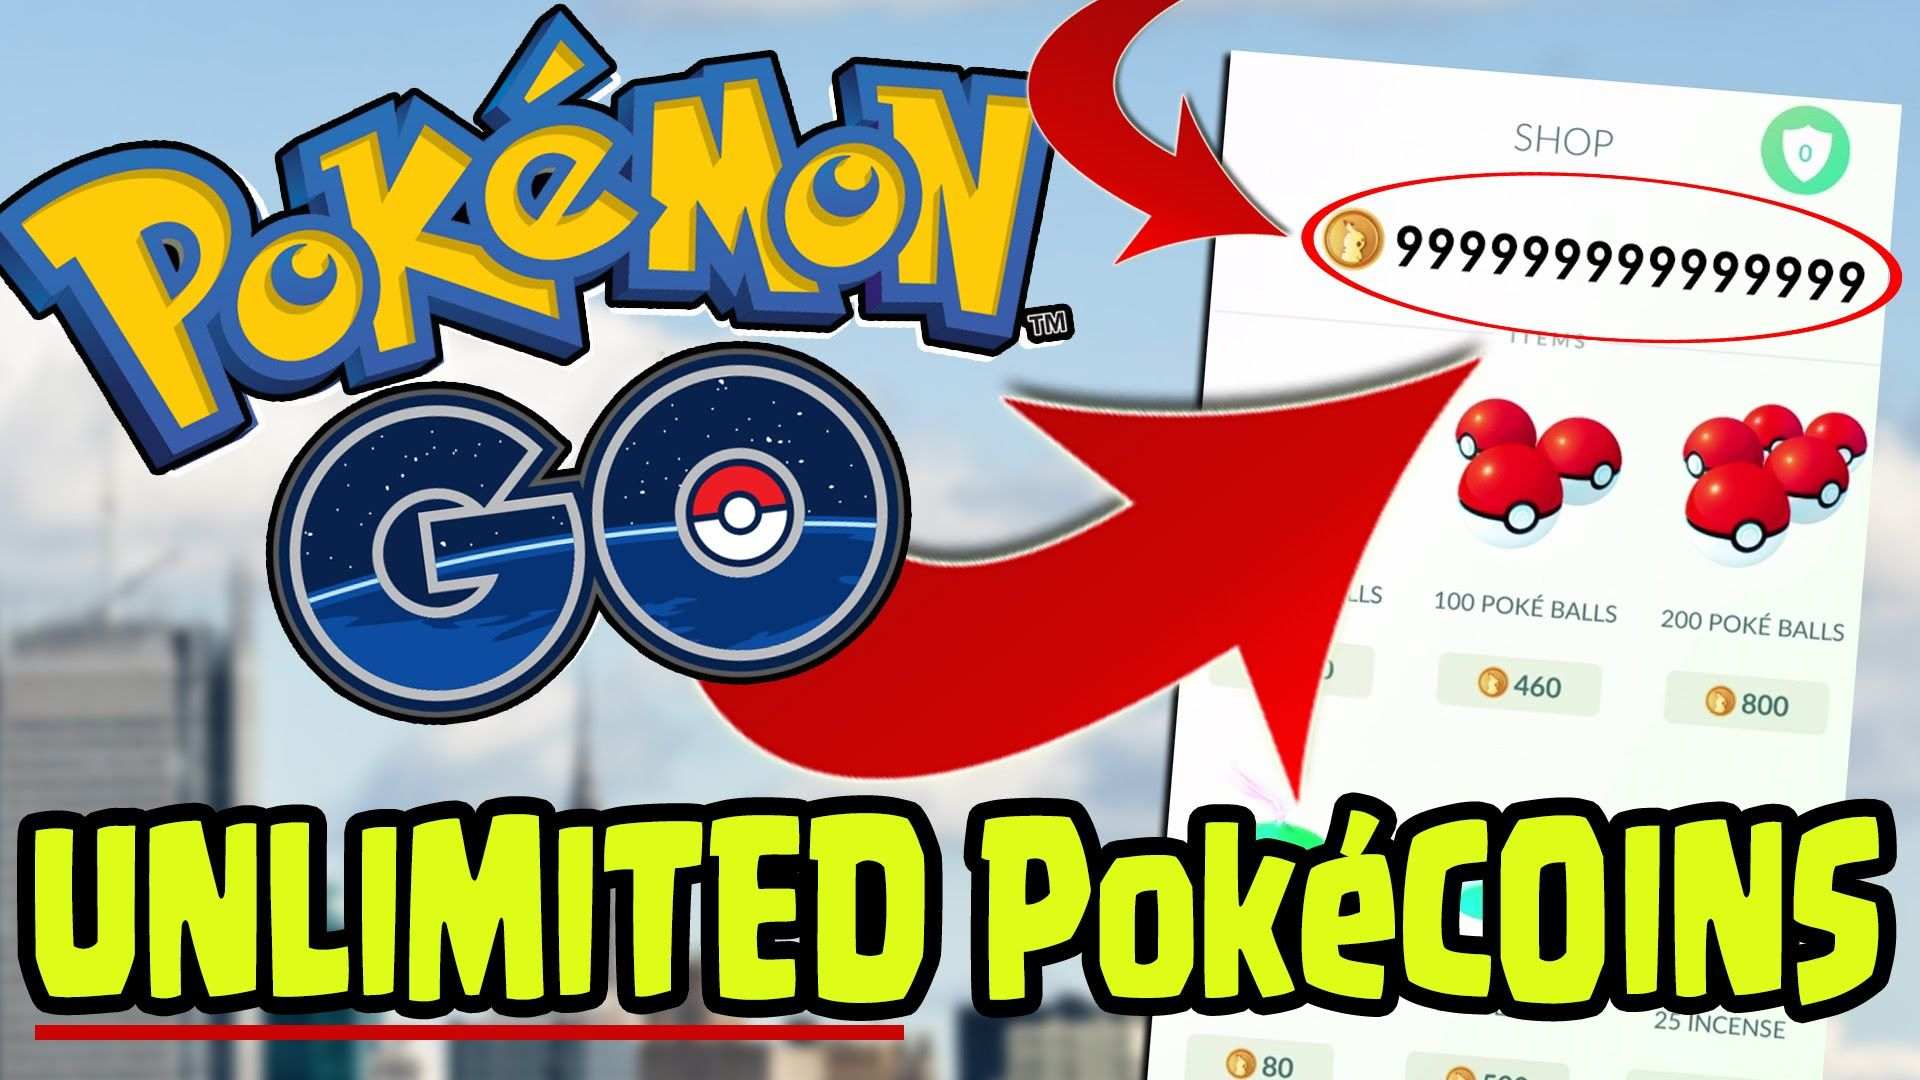 Get Unlimited Pokecoins & Pokeballs For Free! 100% Working [20 Oct 2020]